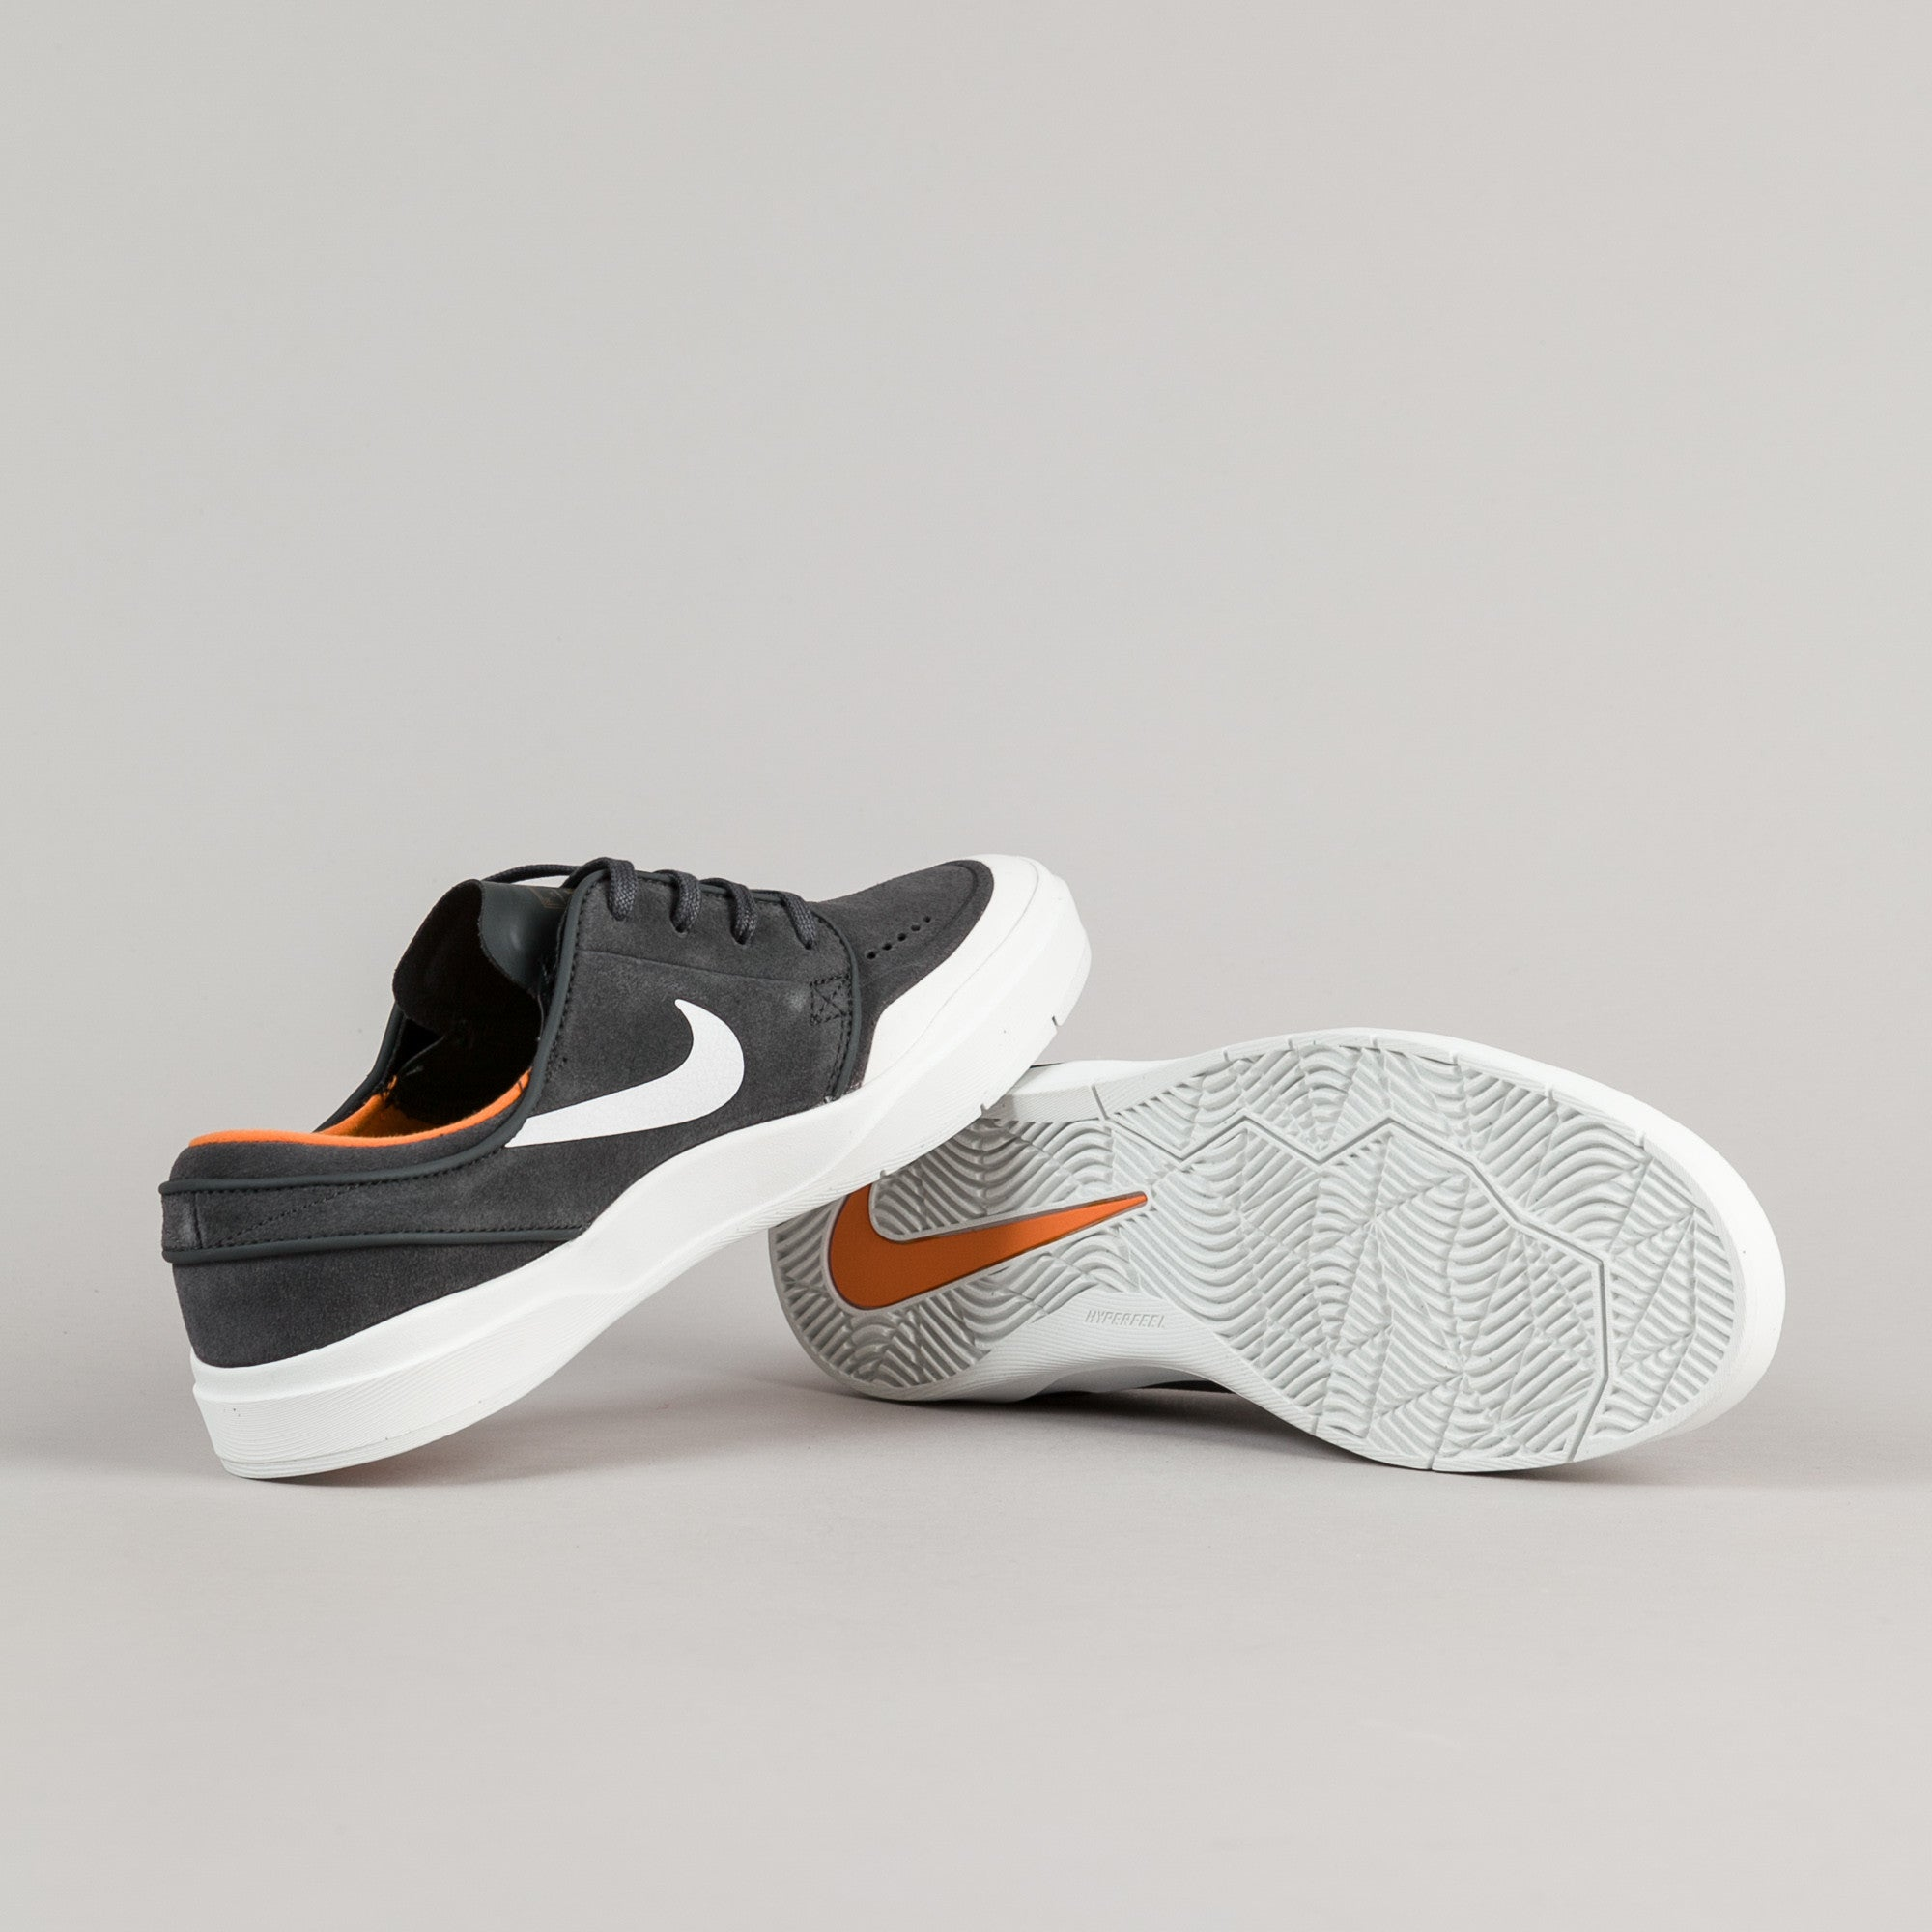 hot sale online f68f6 f70fa ... Nike SB Stefan Janoski Hyperfeel XT Shoes - Anthracite   White - Summit  White - Clay ...